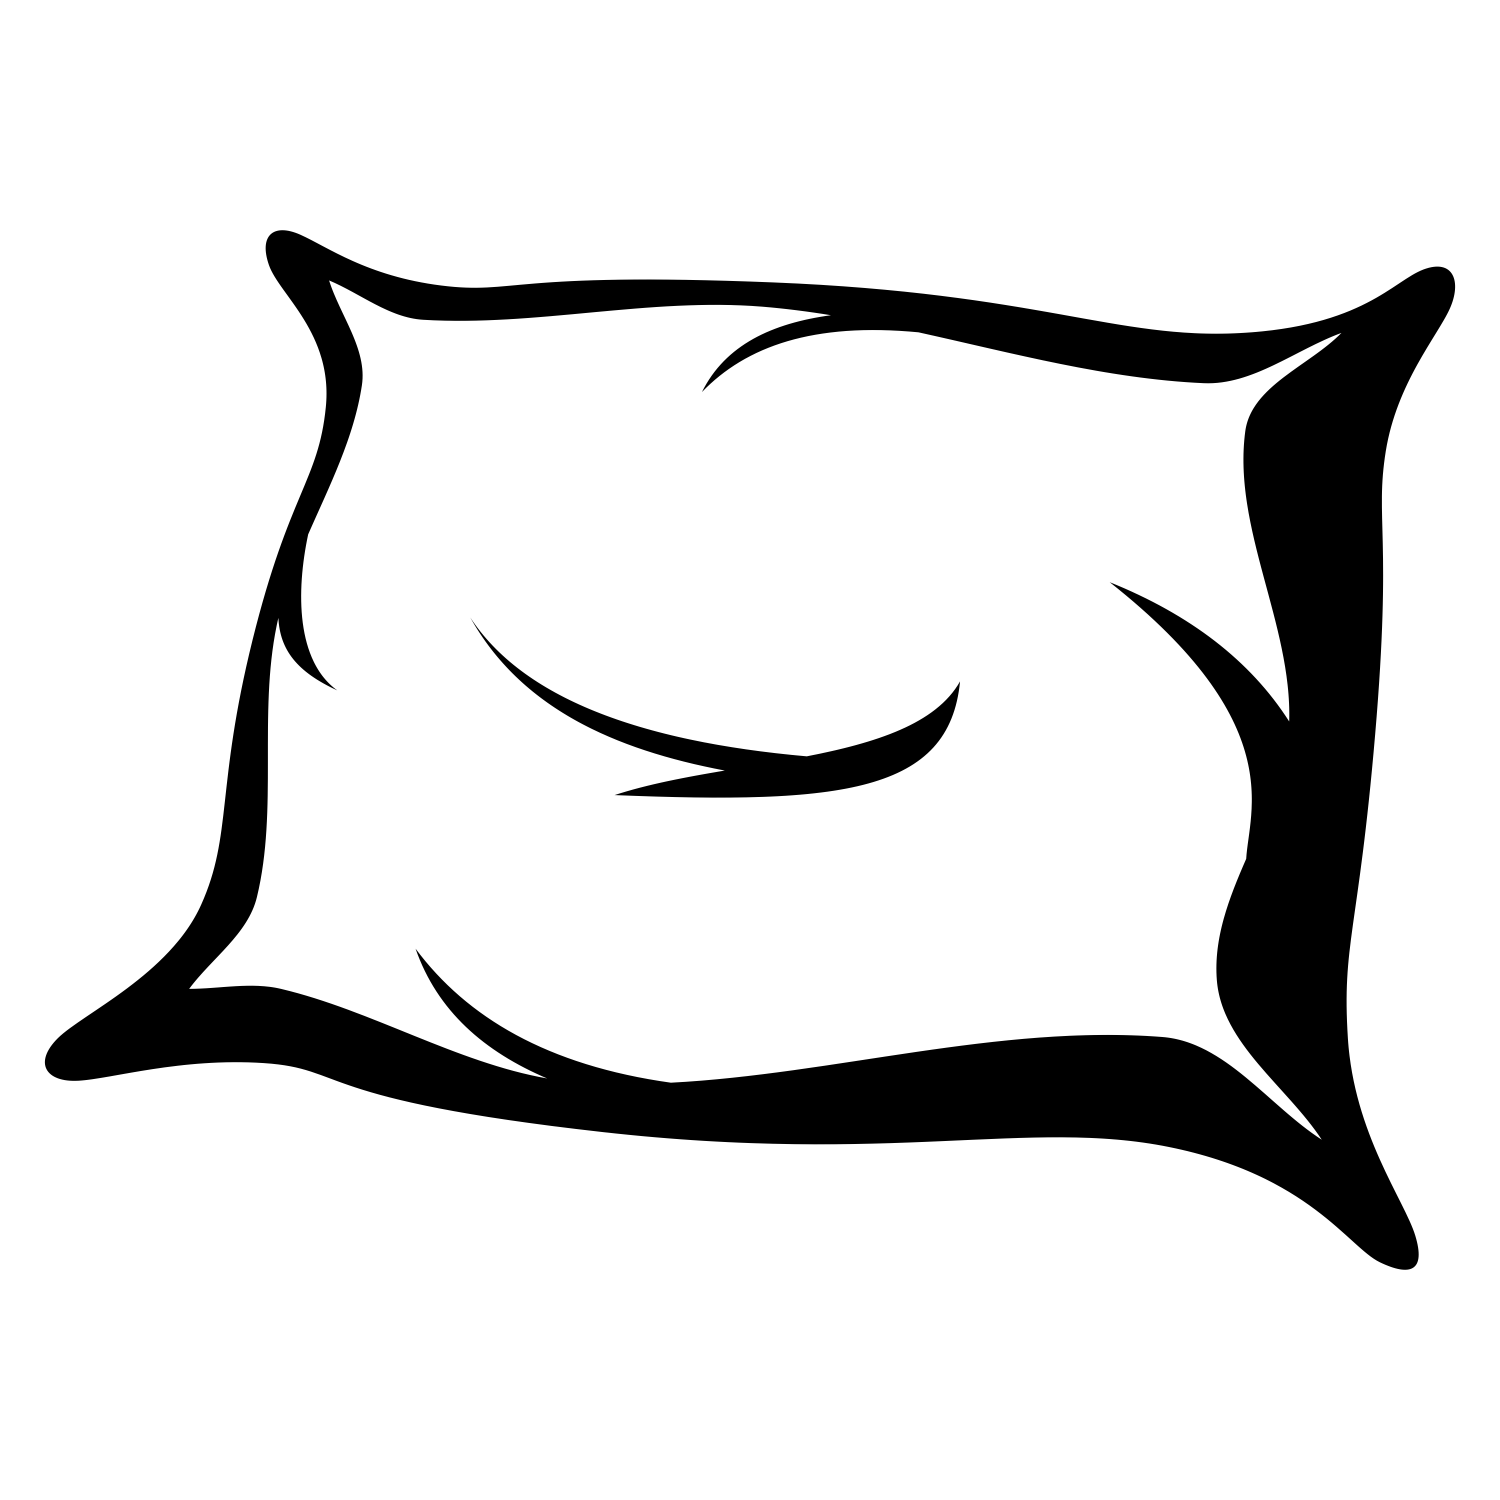 pillow clipart black and white | Clipart Station for Pillow Clipart Black And White  34eri